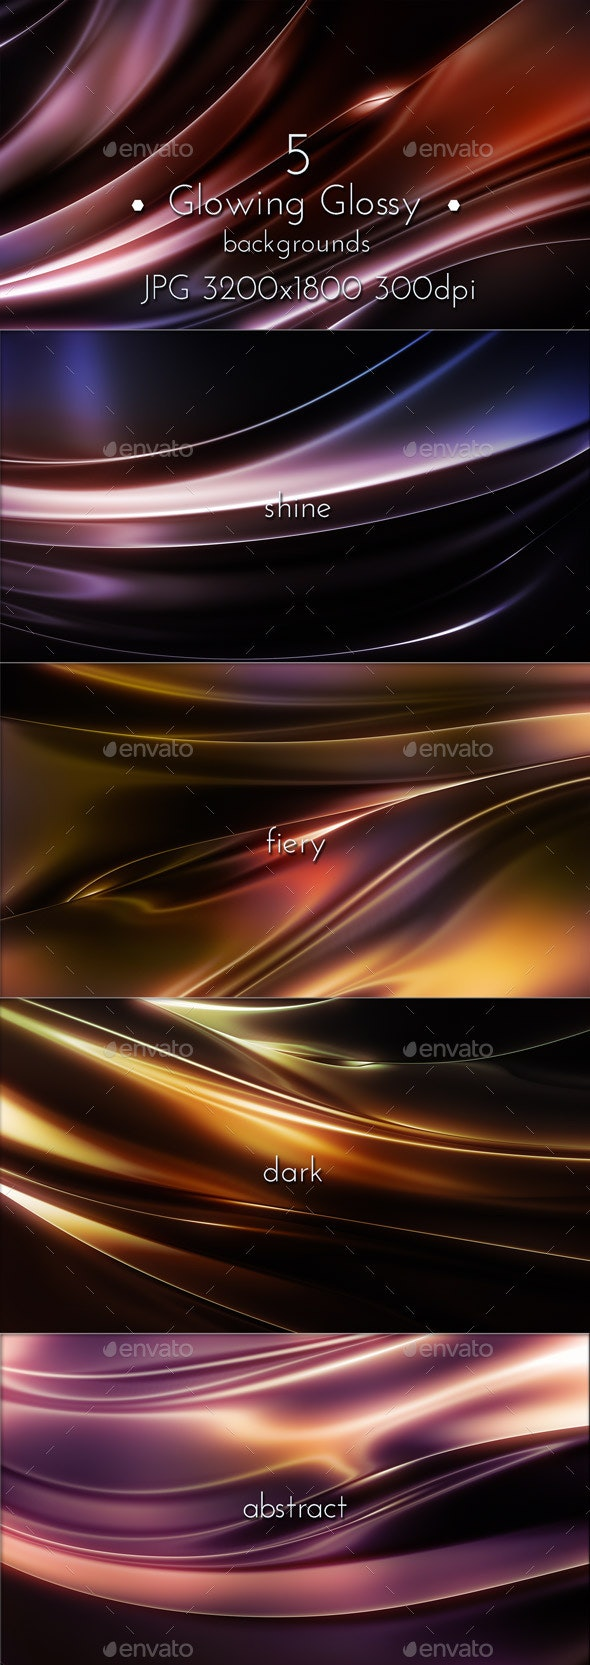 Glowing Glossy Backgrounds - 3D Backgrounds